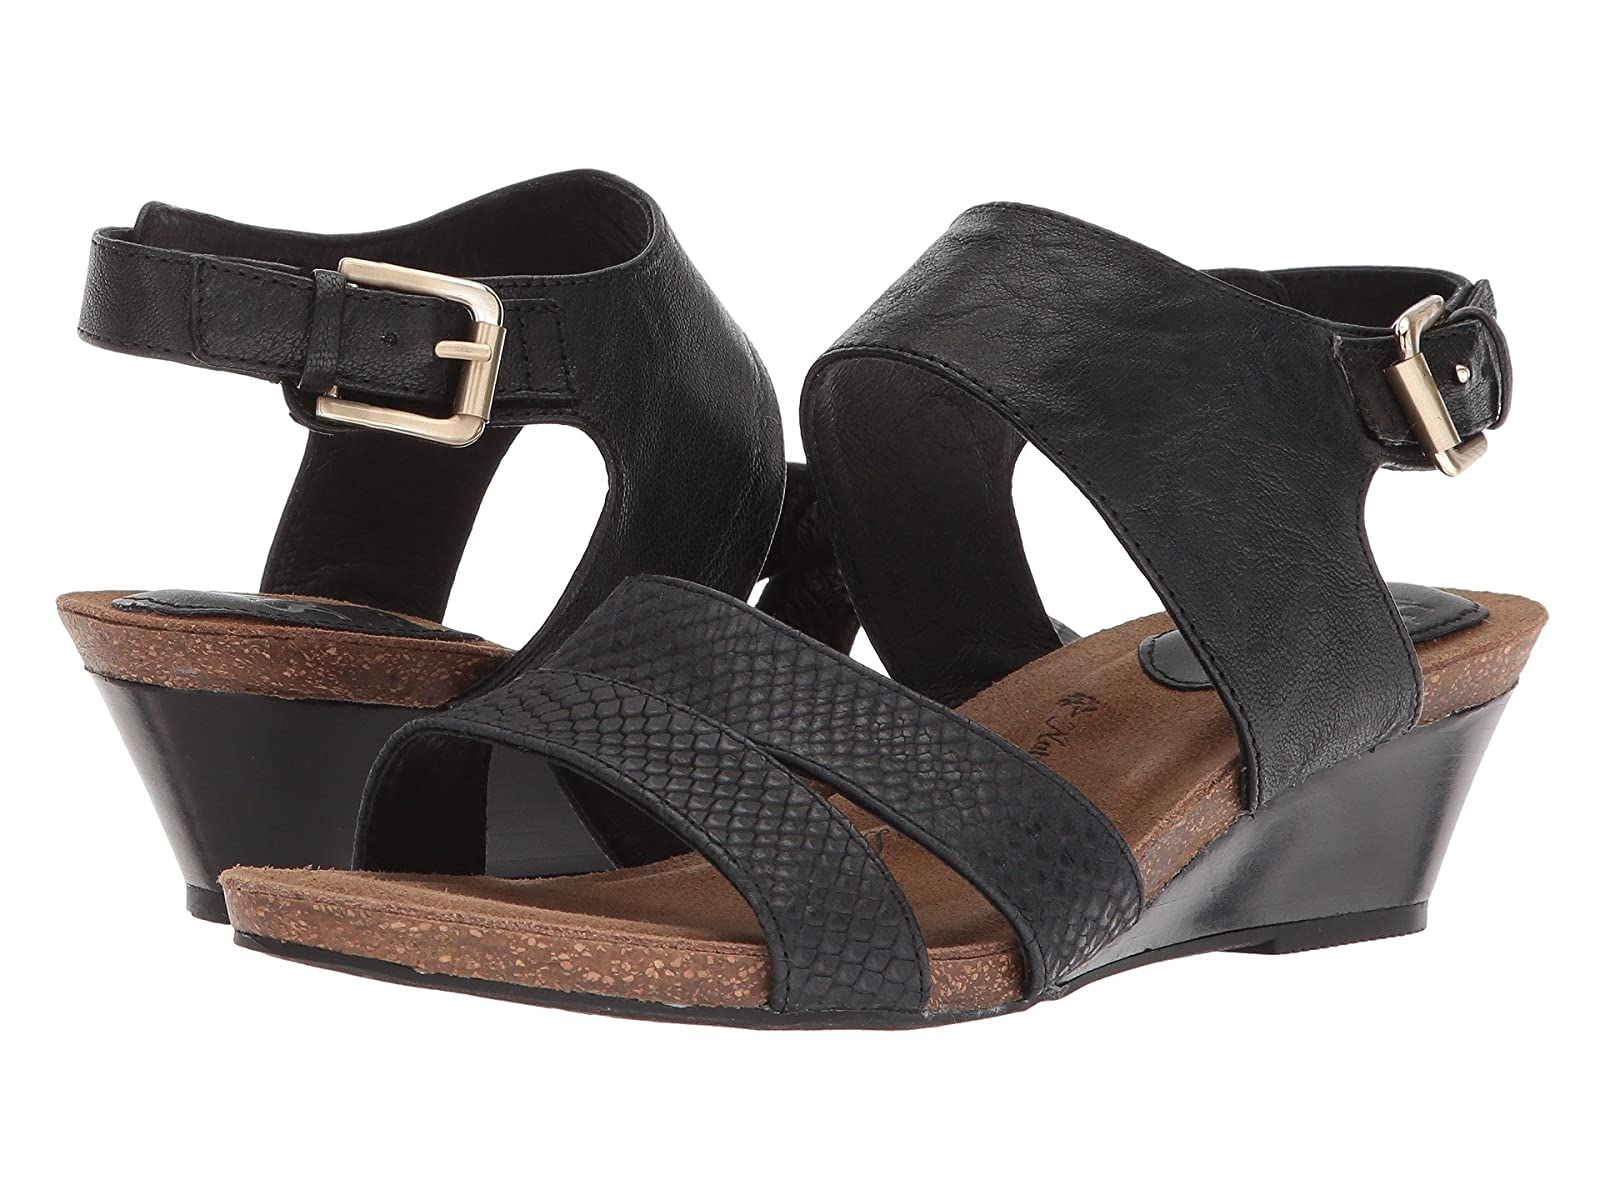 Sofft VeldenCheap and distinctive eye-catching shoes